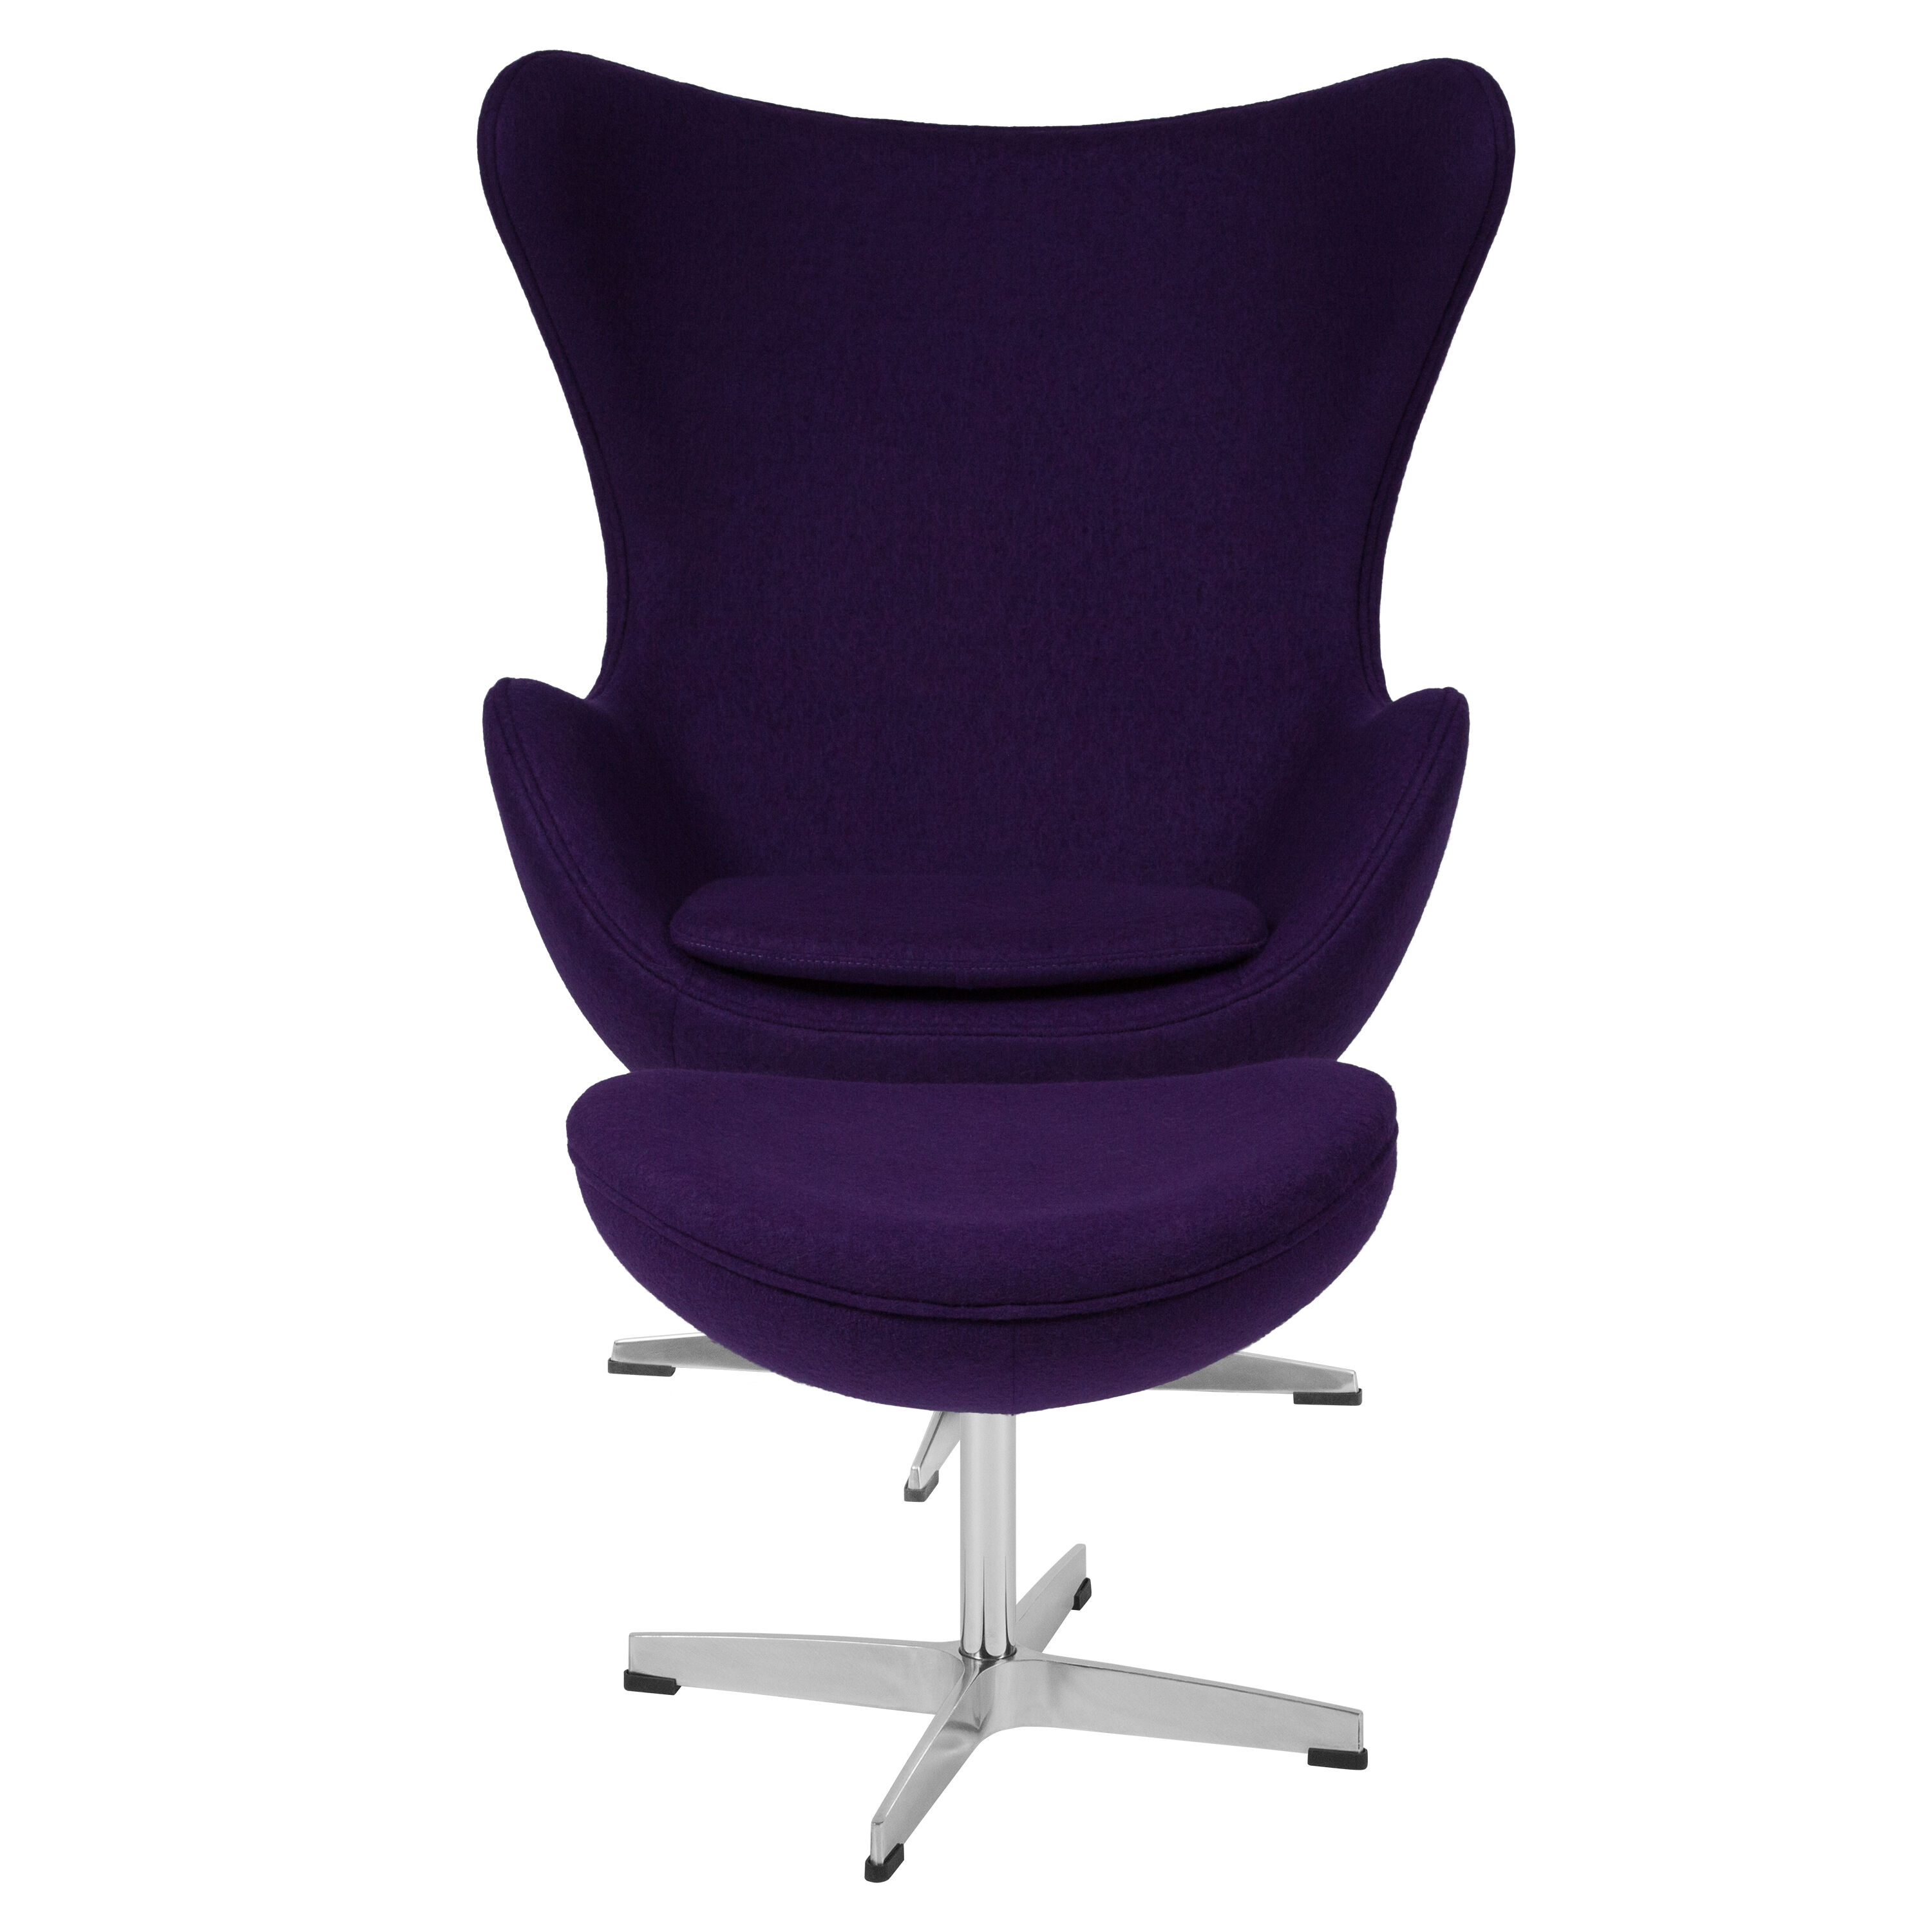 ... Our Purple Wool Fabric Egg Chair With Tilt Lock Mechanism And Ottoman  Is On Sale